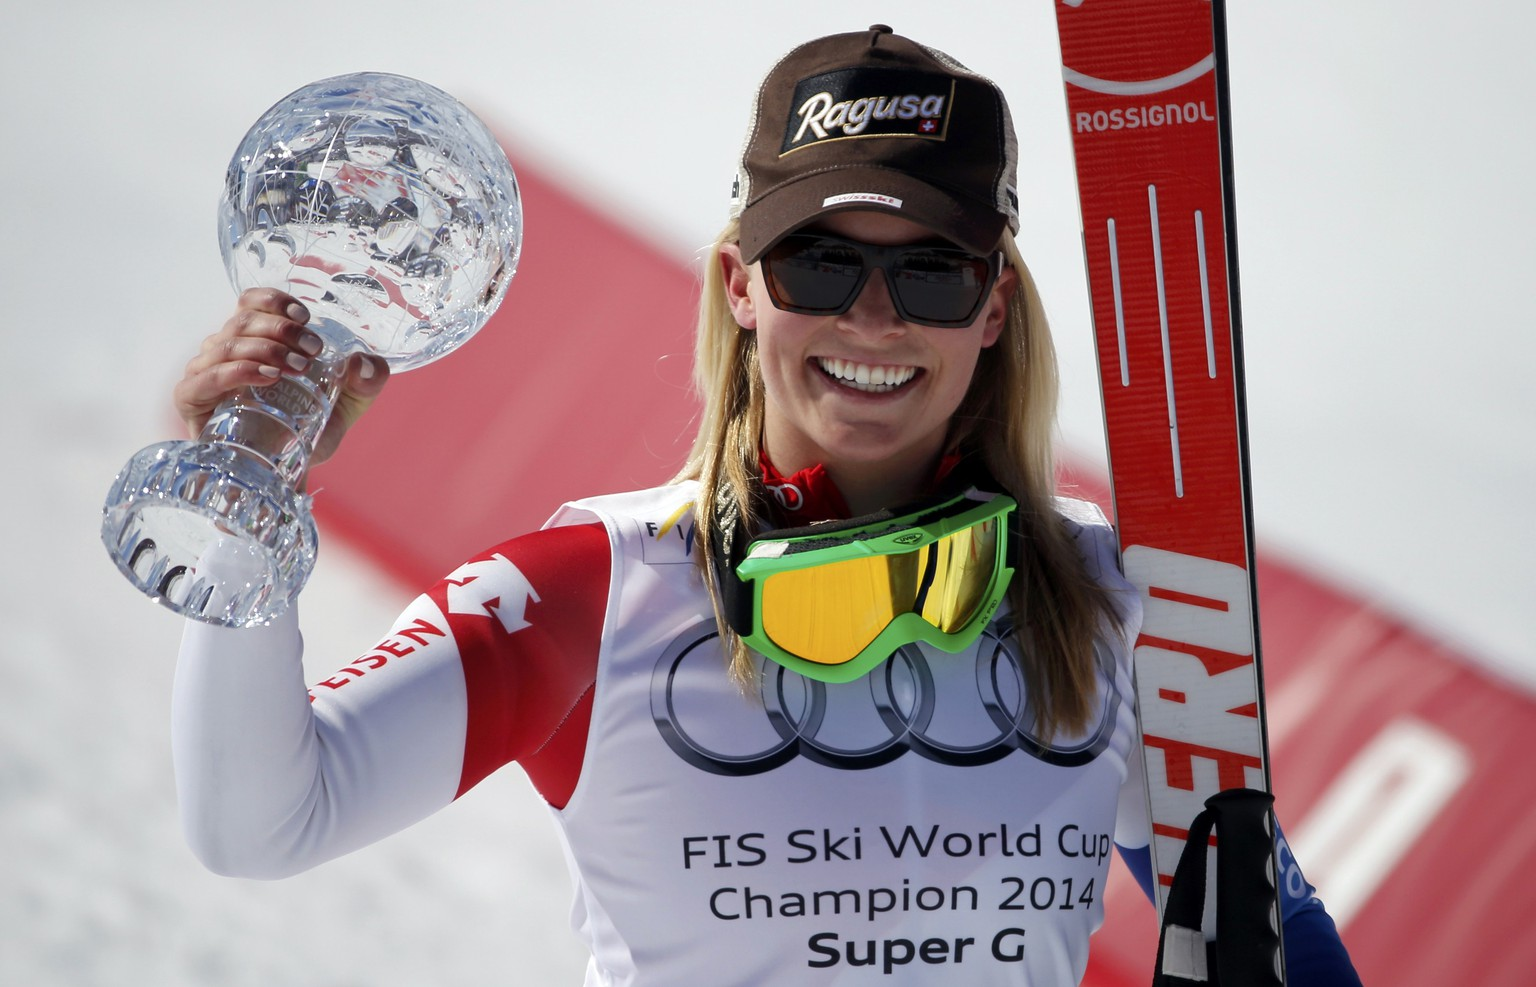 Lara Gut of Switzerland celebrates with the trophy after winning the overall women's Super G competition during the FIS Alpine Skiing World Cup finals in the Swiss ski resort of Lenzerheide March 13, 2014. REUTERS/Leonhard Foeger (SWITZERLAND  - Tags: SPORT SKIING)